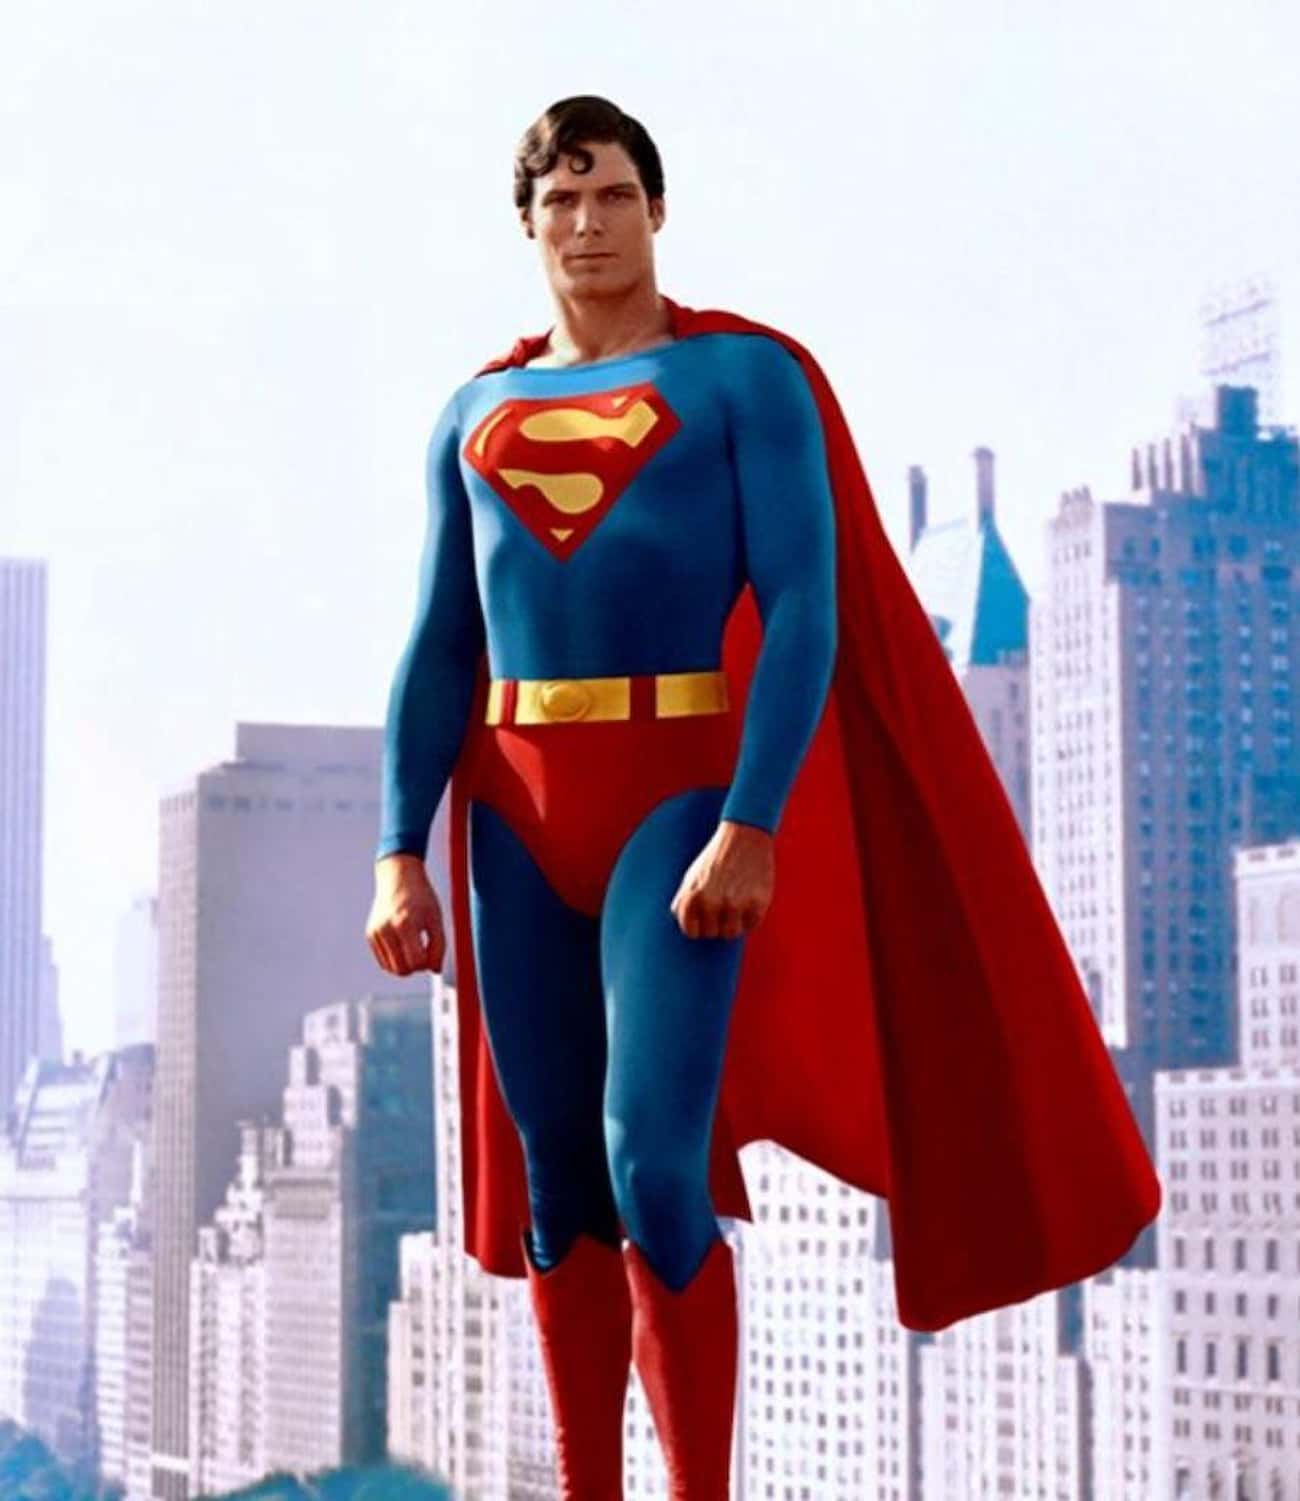 The 'Superman: The Movie' Suit